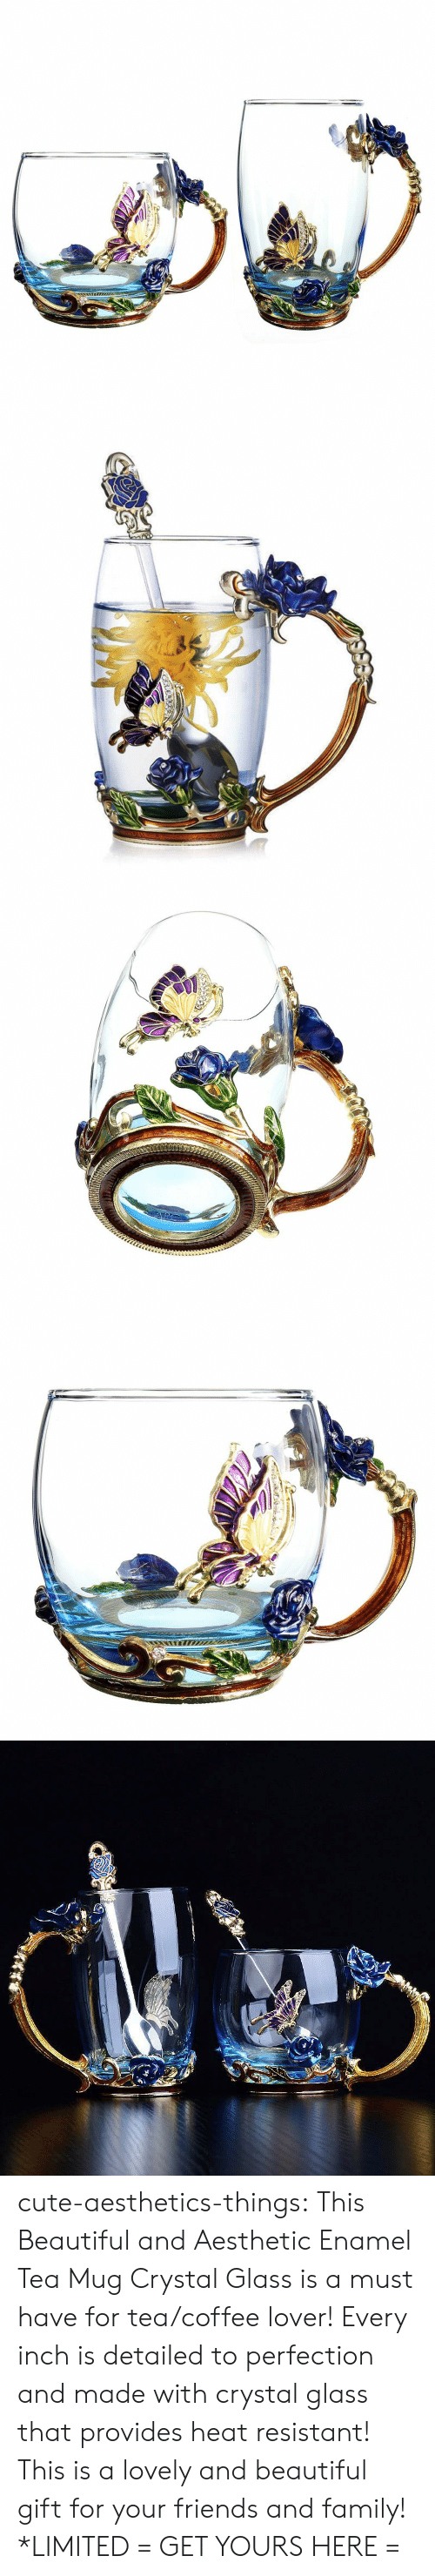 Beautiful, Cute, and Family: cute-aesthetics-things: This Beautiful and AestheticEnamel Tea Mug Crystal Glass is a must have for tea/coffee lover! Every inch is detailed to perfection and made with crystal glass that provides heat resistant! This is a lovely and beautiful gift for your friends and family! *LIMITED = GET YOURS HERE =